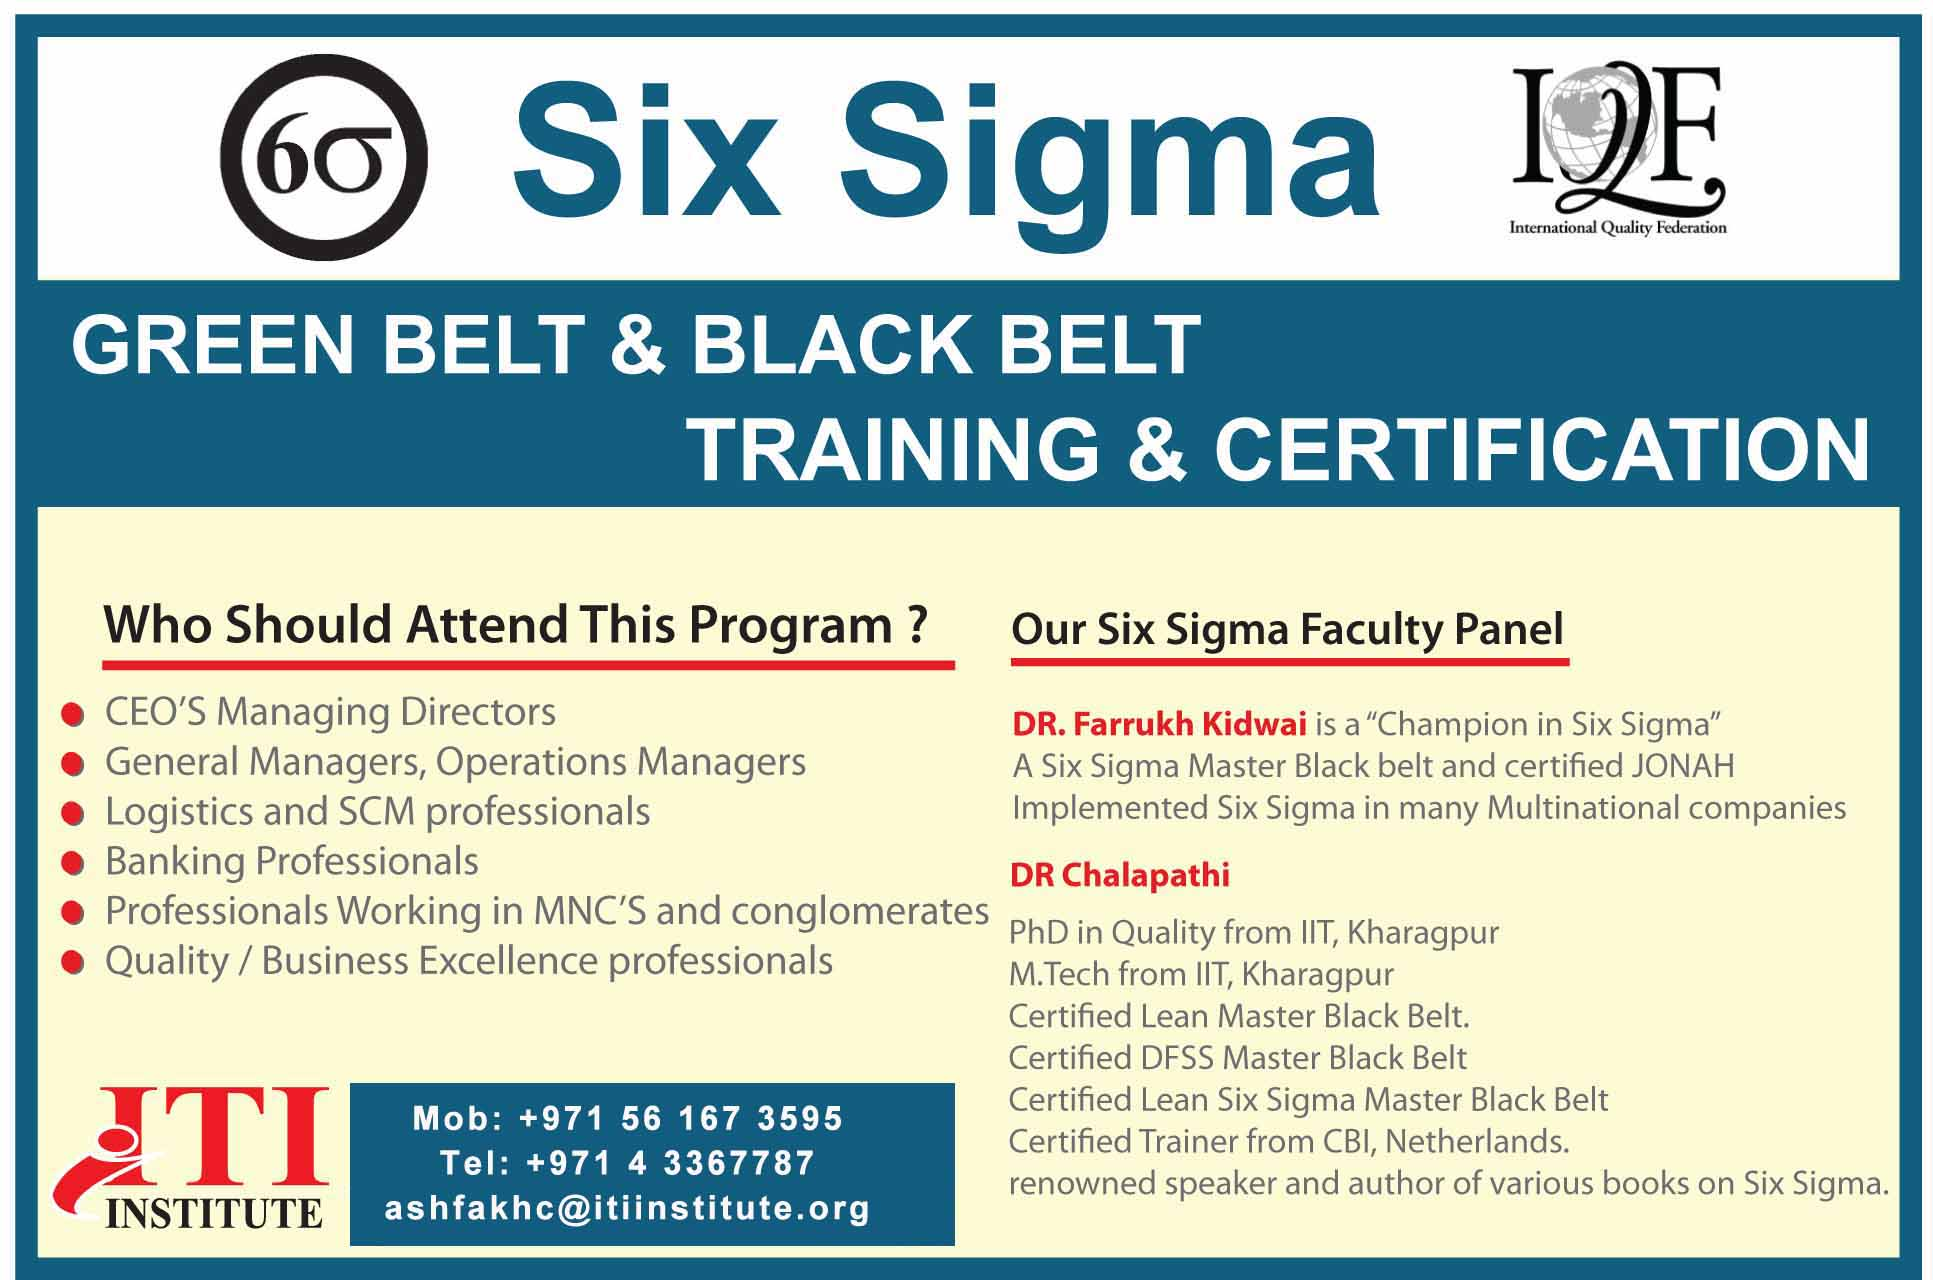 Six Sigma Green Belt and Black Belt from IQF - USA